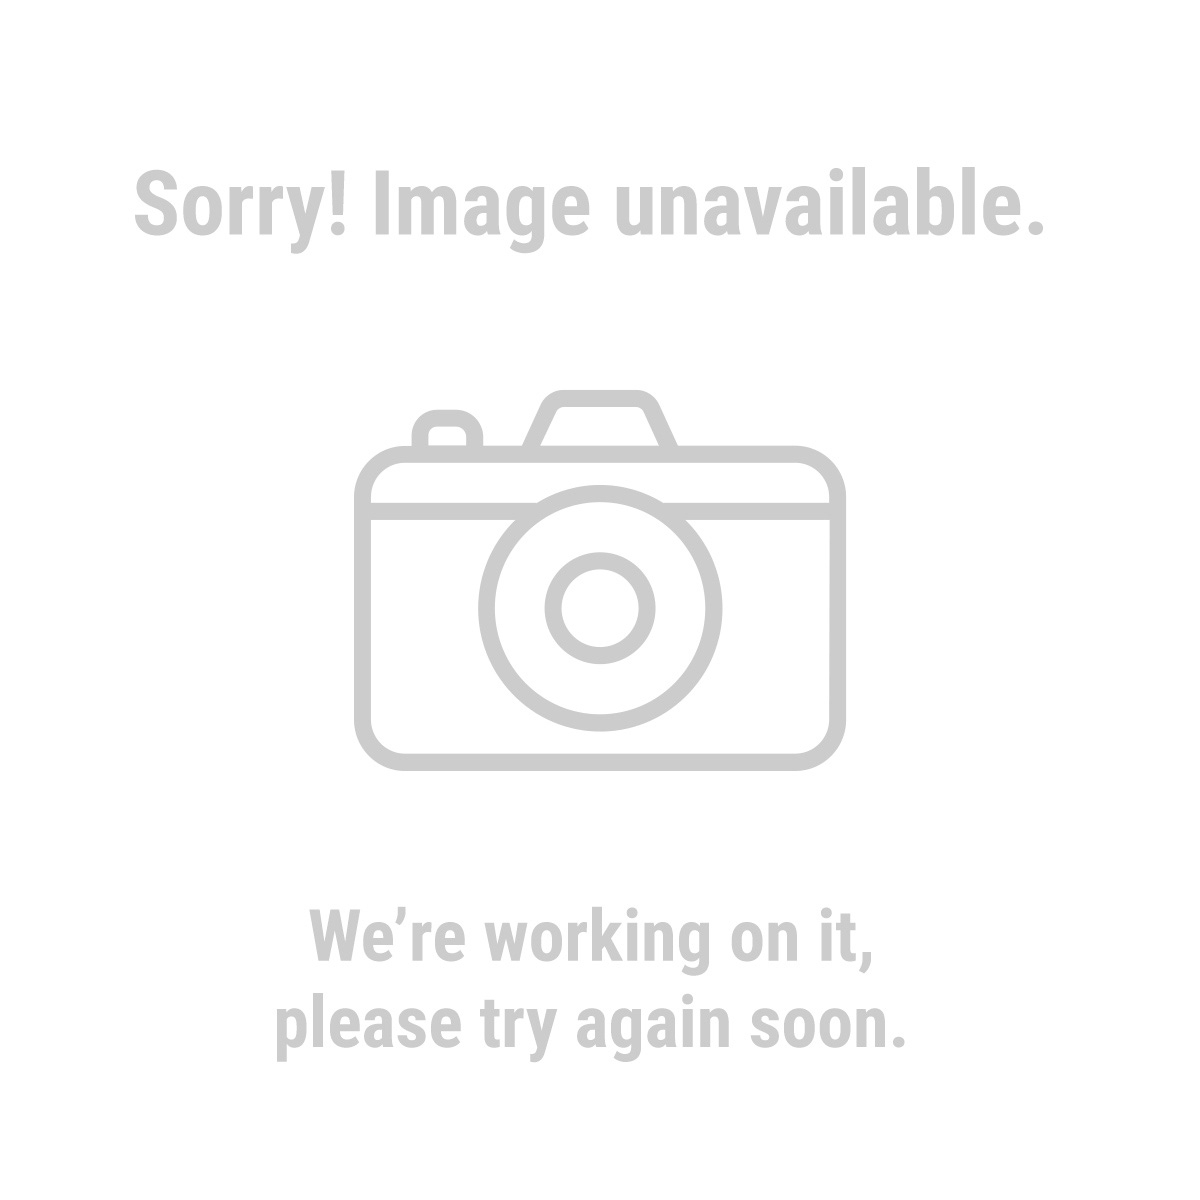 "Warrior 93895 7-1/4"", 40 Tooth Carbide Tipped Circular Saw Blade with Titanium Nitride Coating"